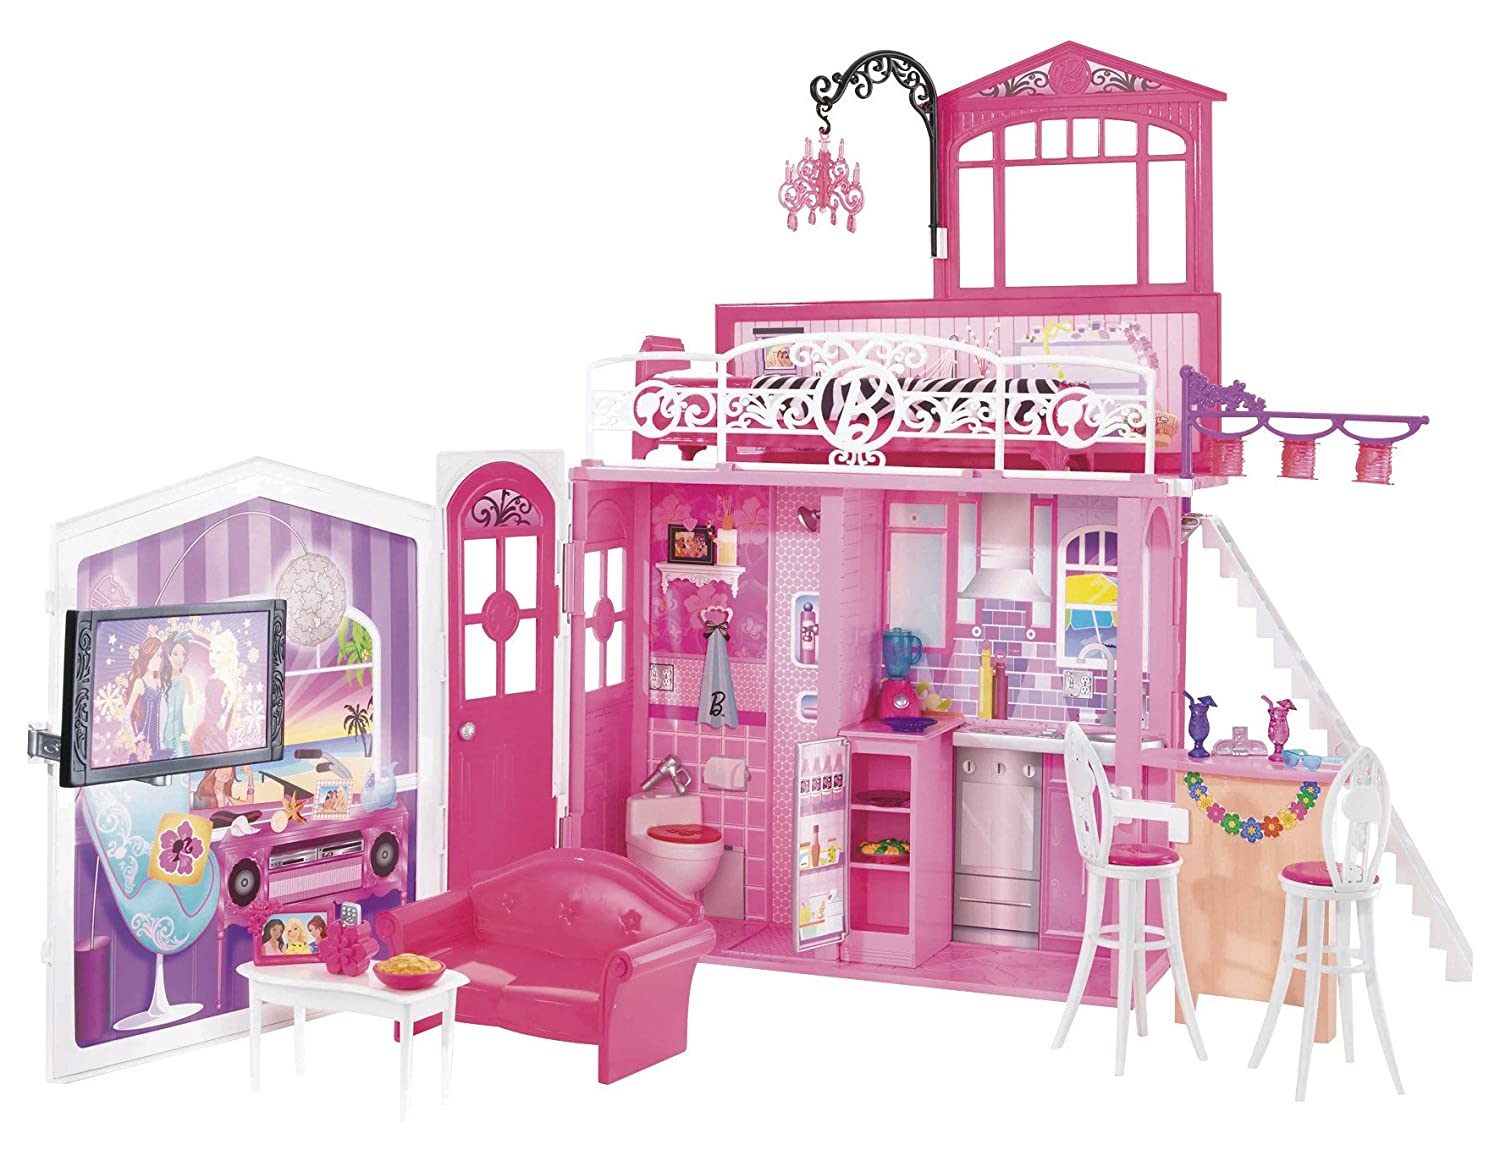 Casa glam barbie - Imagui